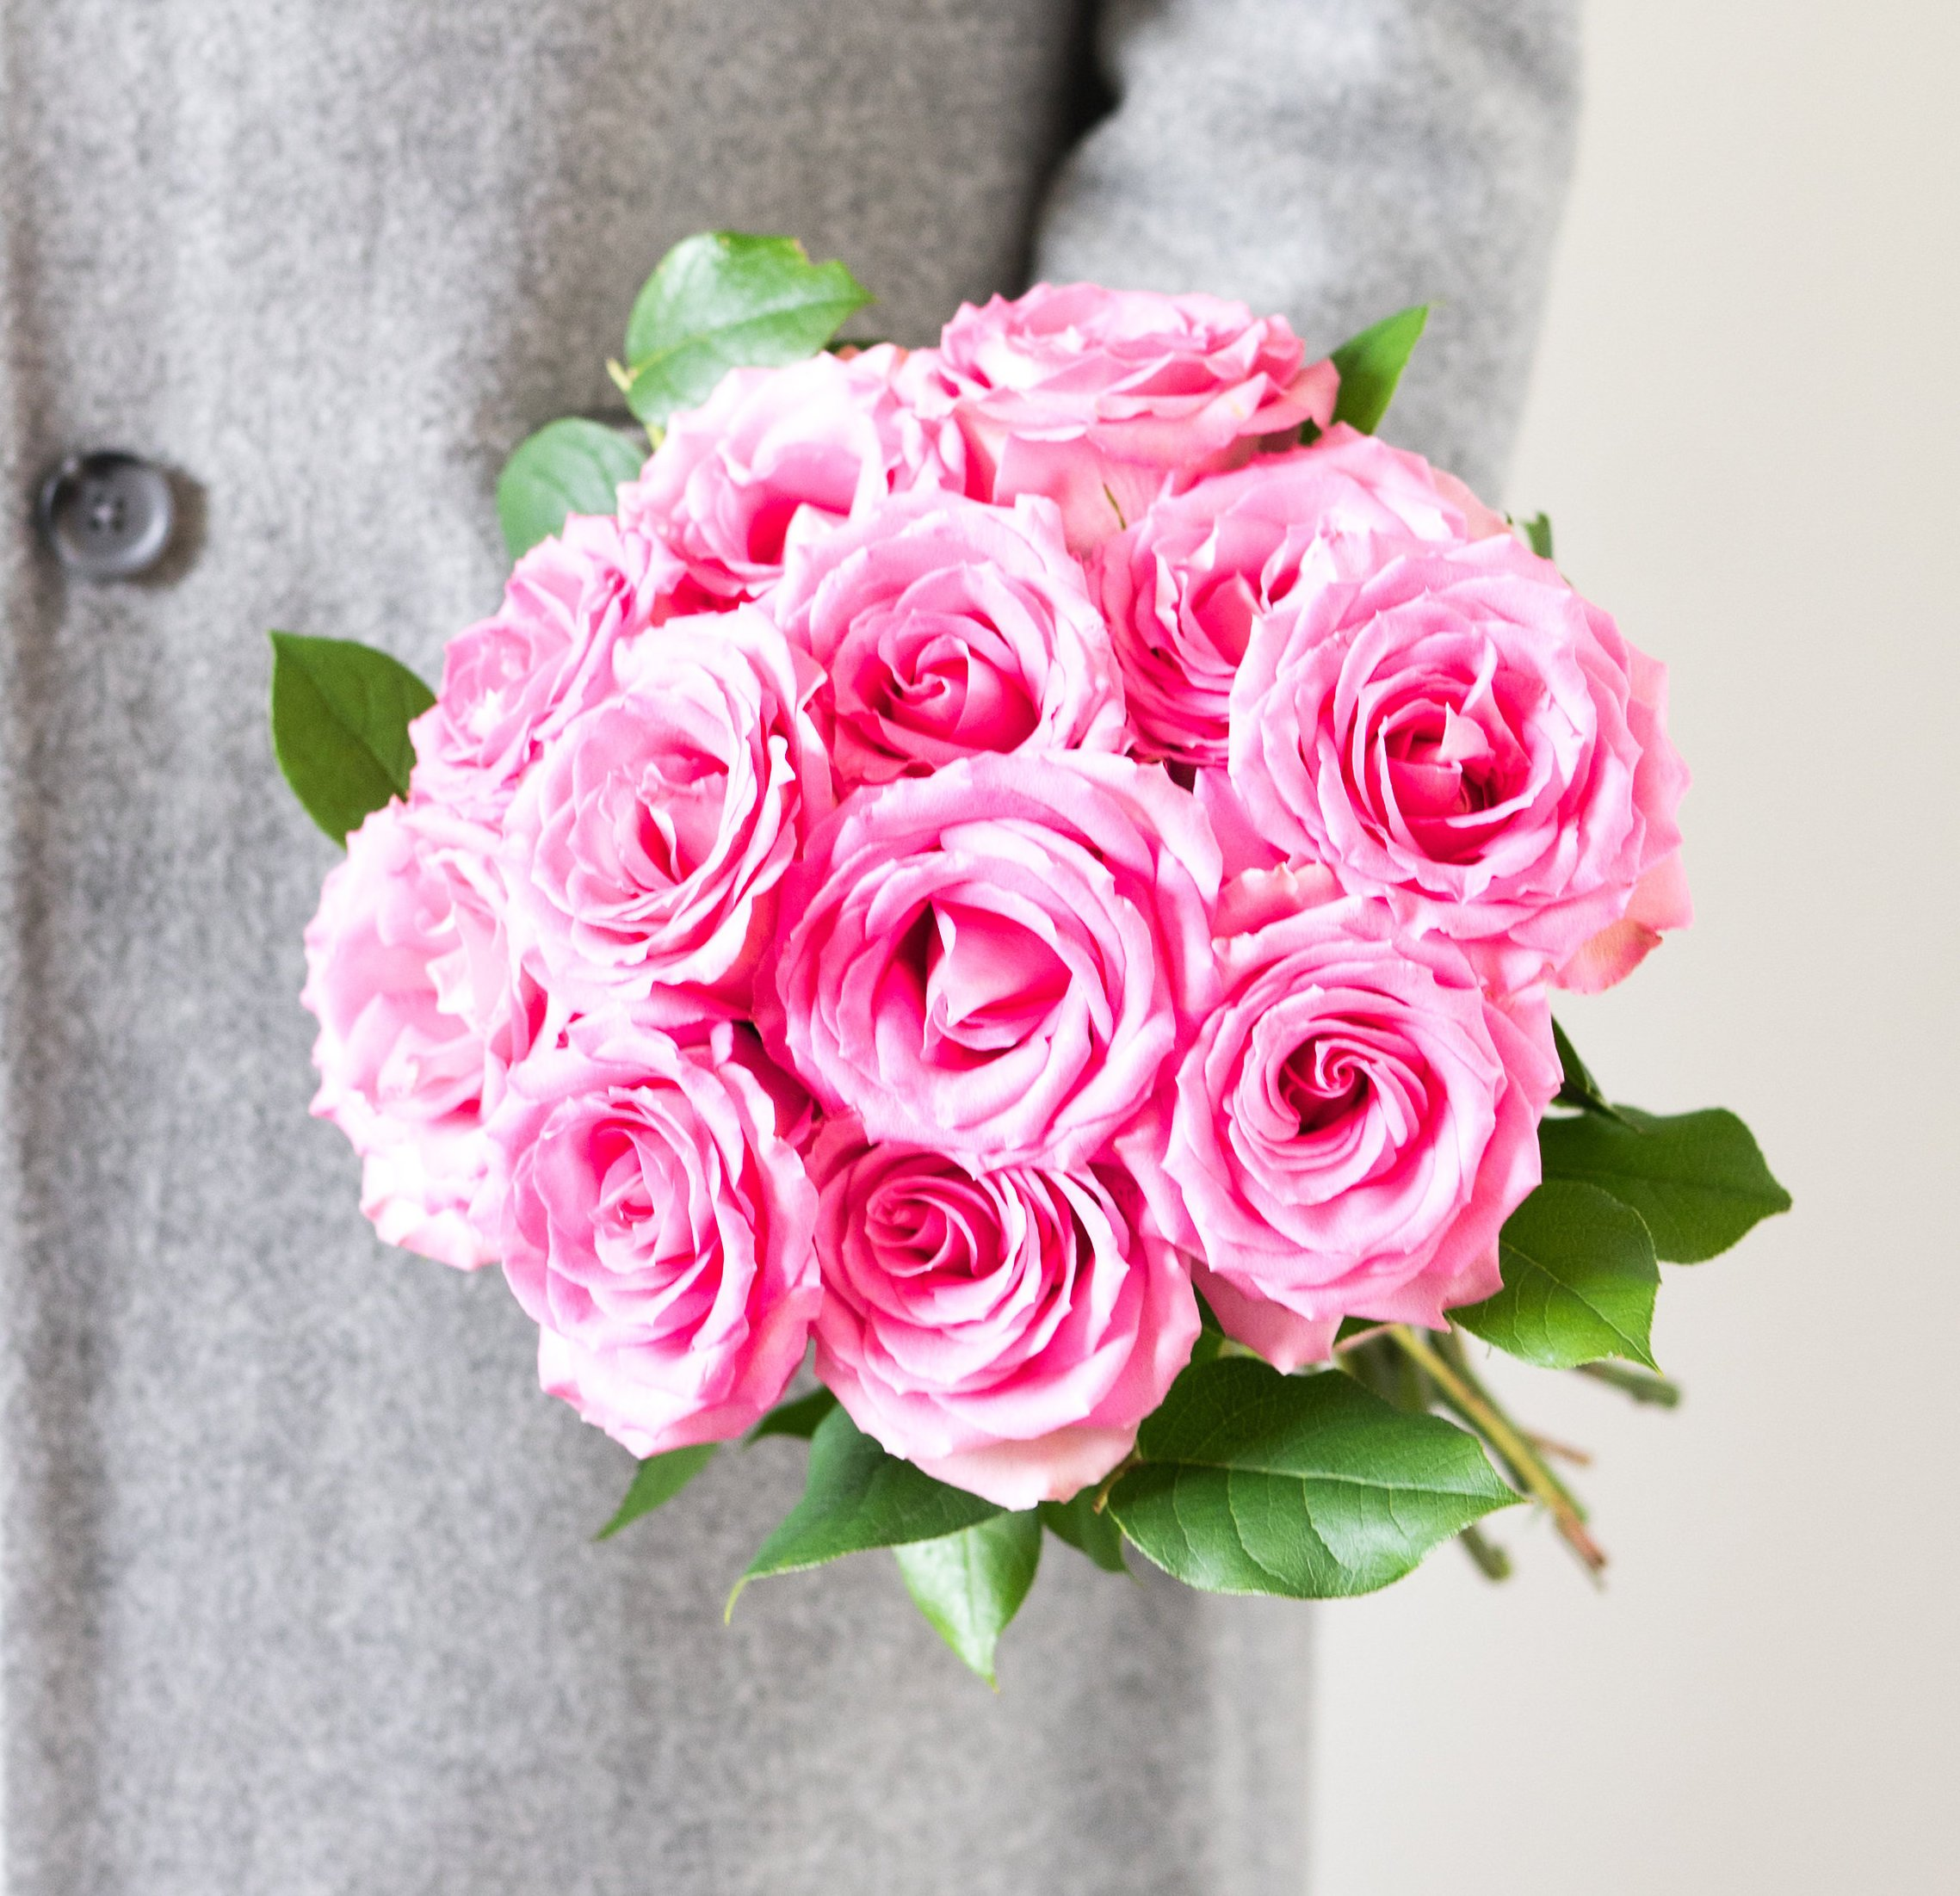 Flowers - One Dozen Pink Roses with Chocolates and a Bear (Free Vase Included) by From You Flowers